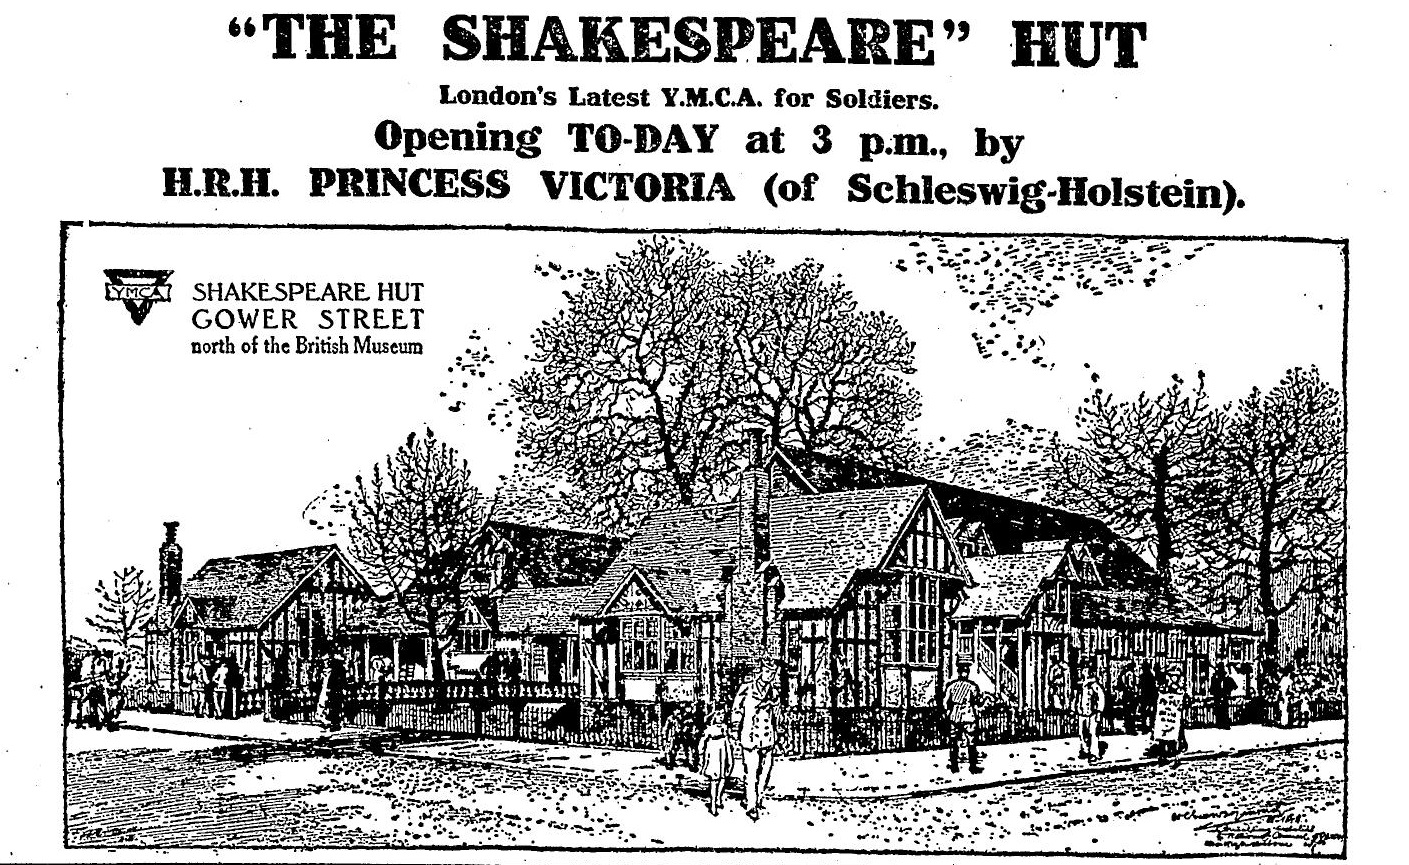 Advertisement for the opening of Shakespeare Hut in August 1916